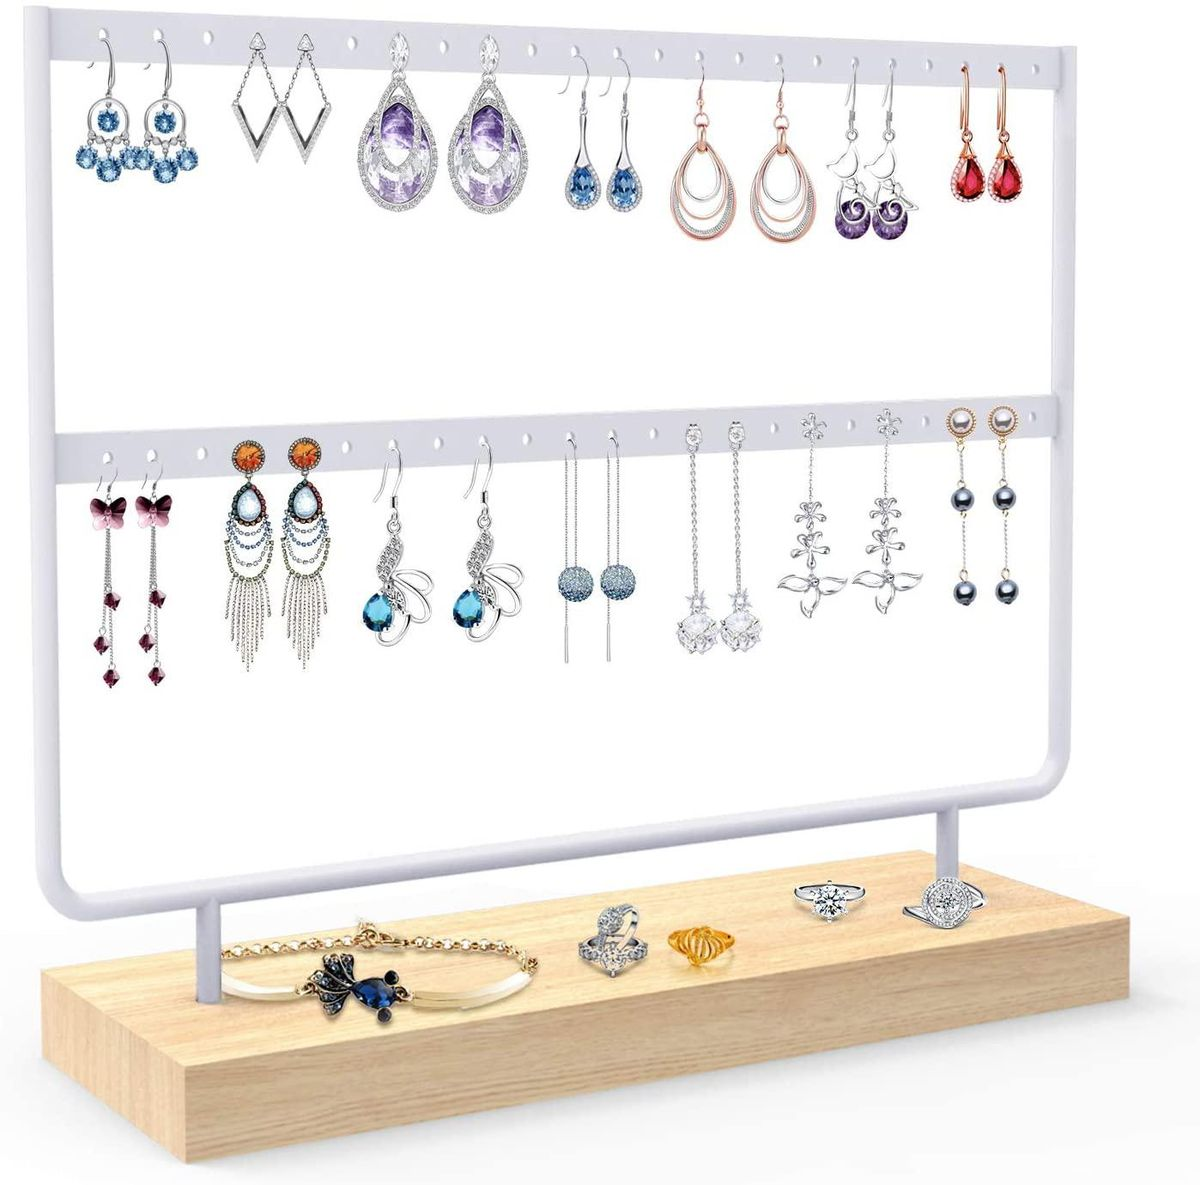 anndofy earrings organizer jewelry display stand